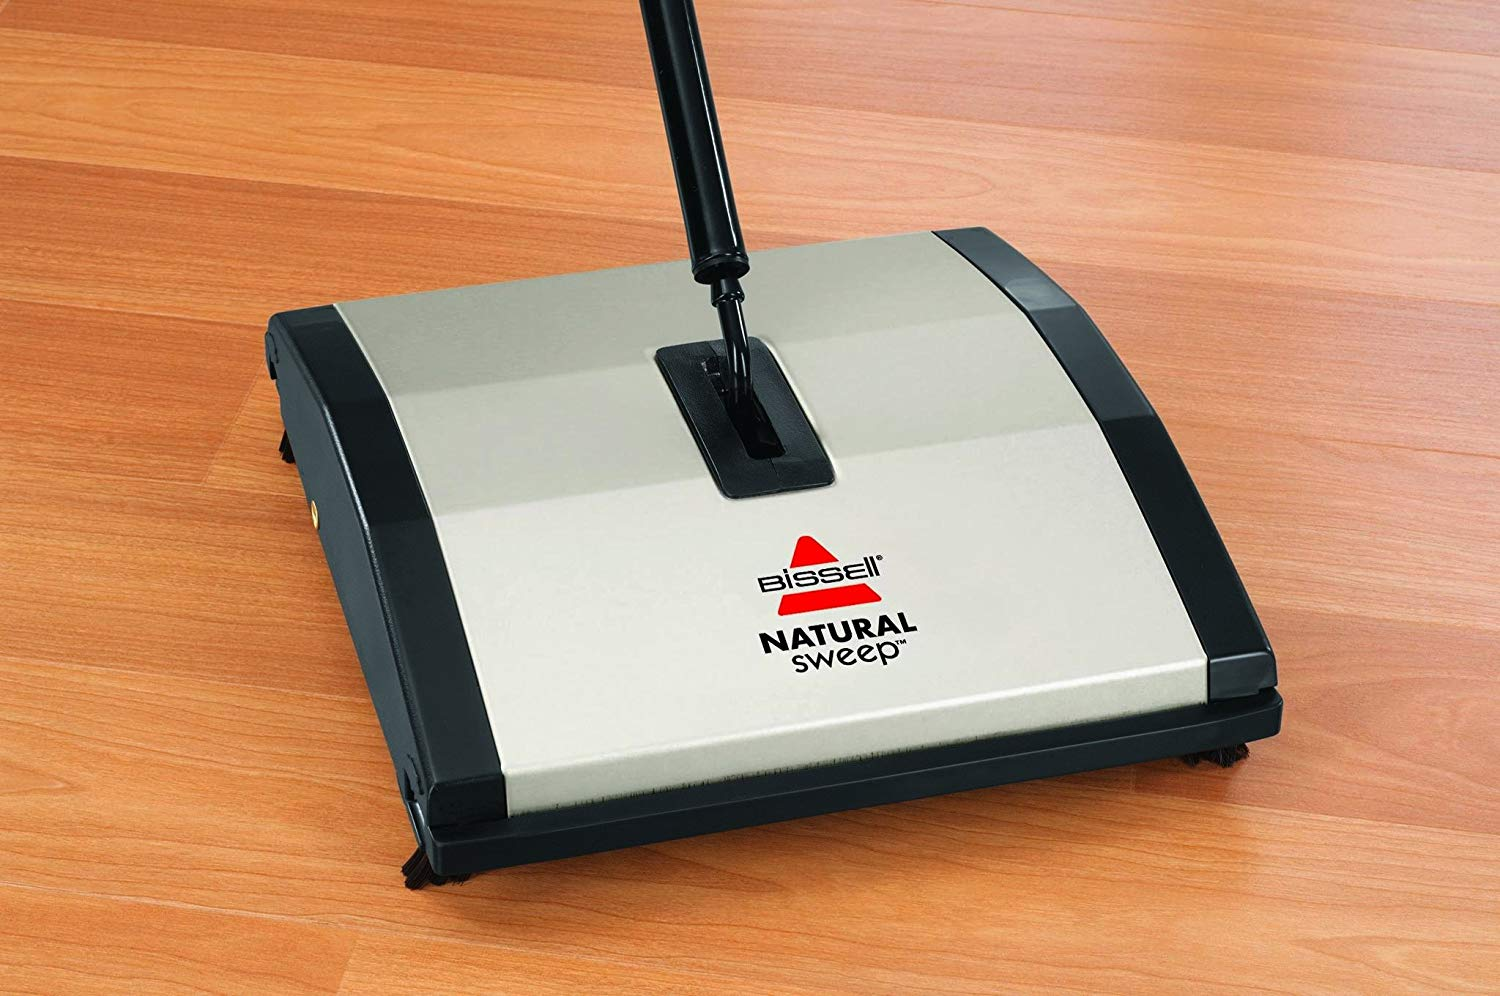 bissell natural sweep amazon